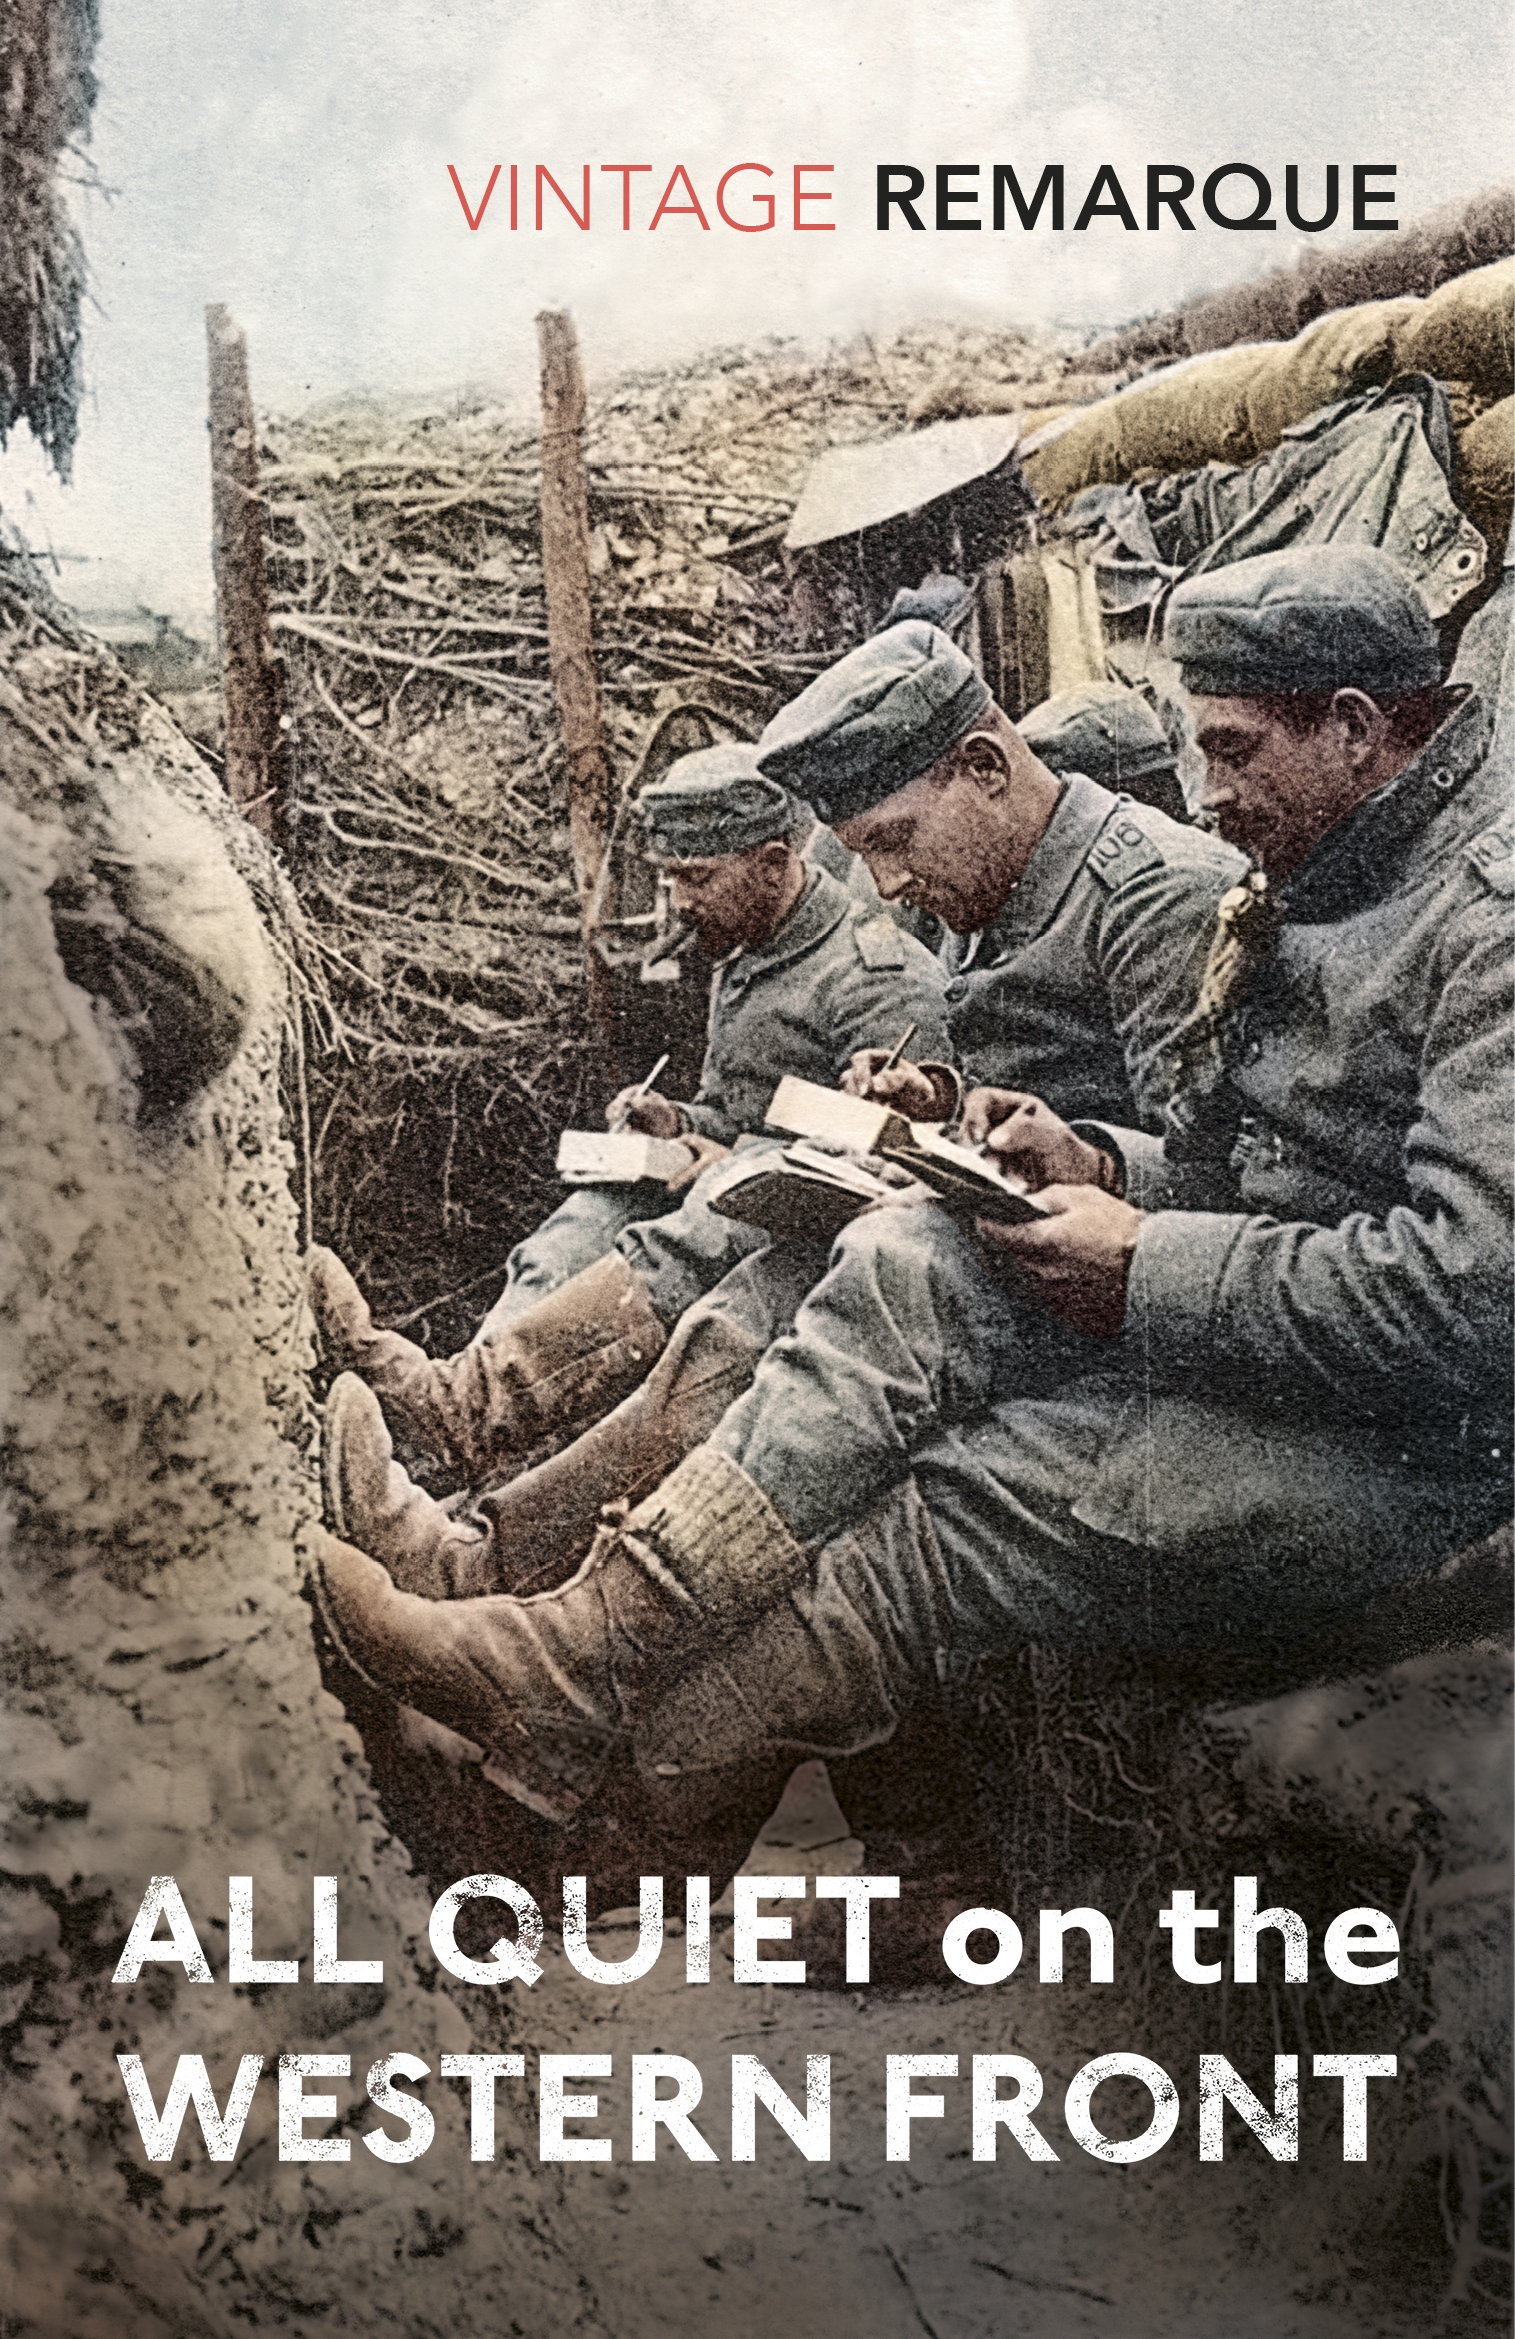 a literary analysis of all quiet on the western front by erich remarque Litcharts assigns a color and icon to each theme in all quiet on the western front, which you can use to track the themes throughout the work the horror of modern war survival.